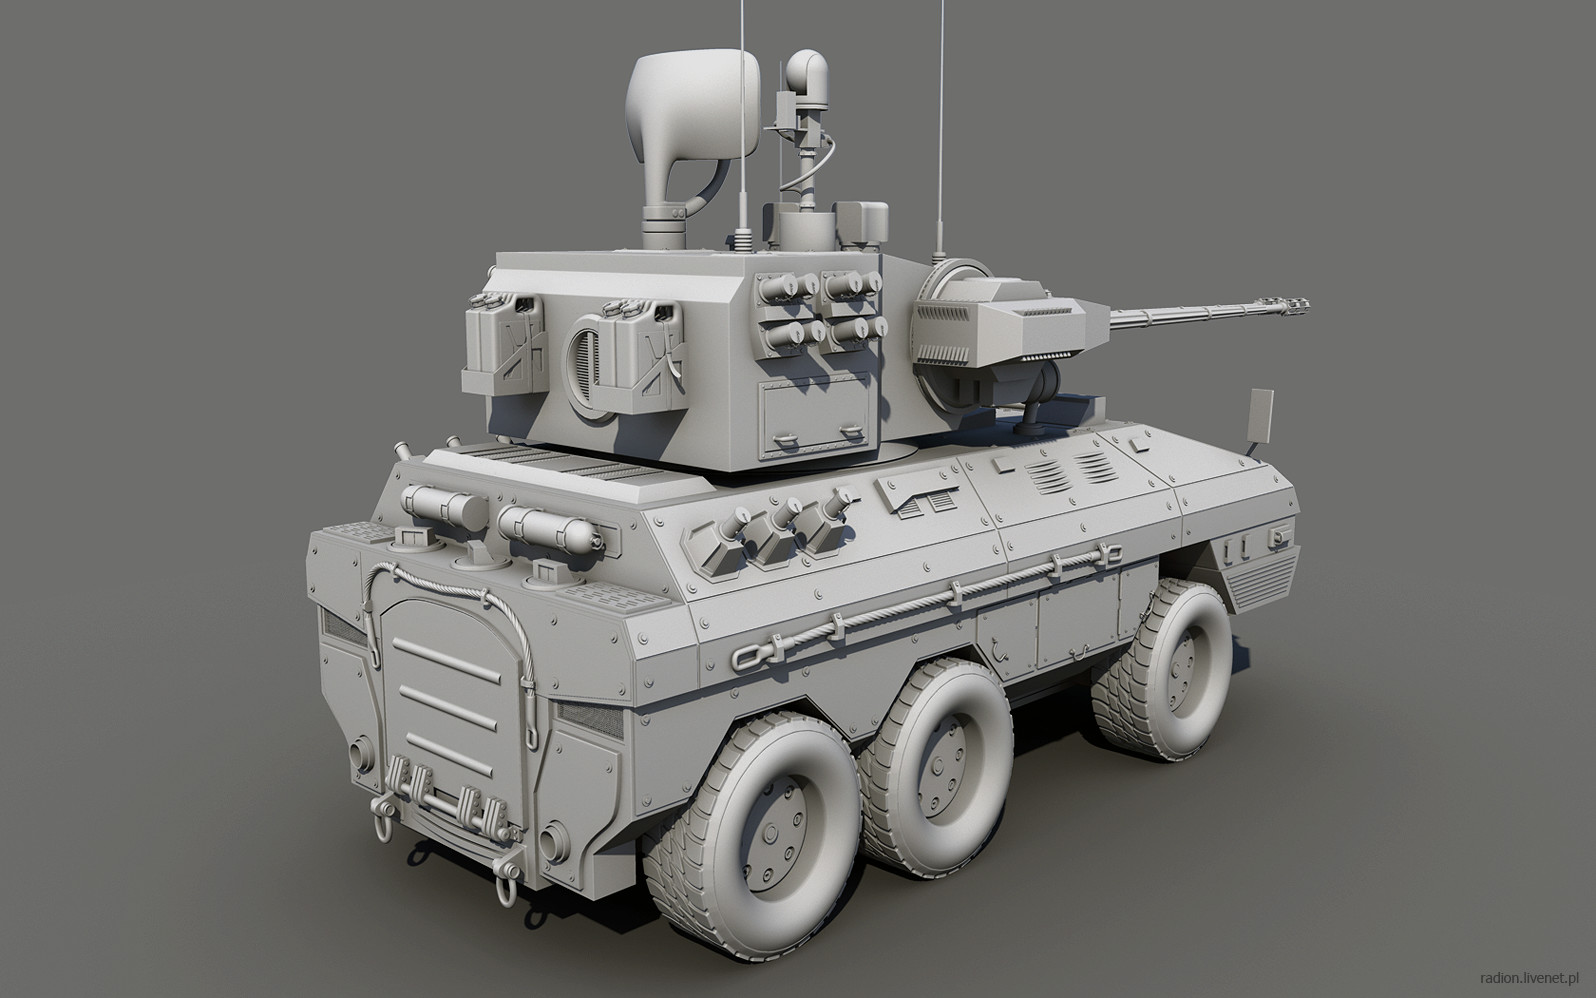 Just another military vehicle